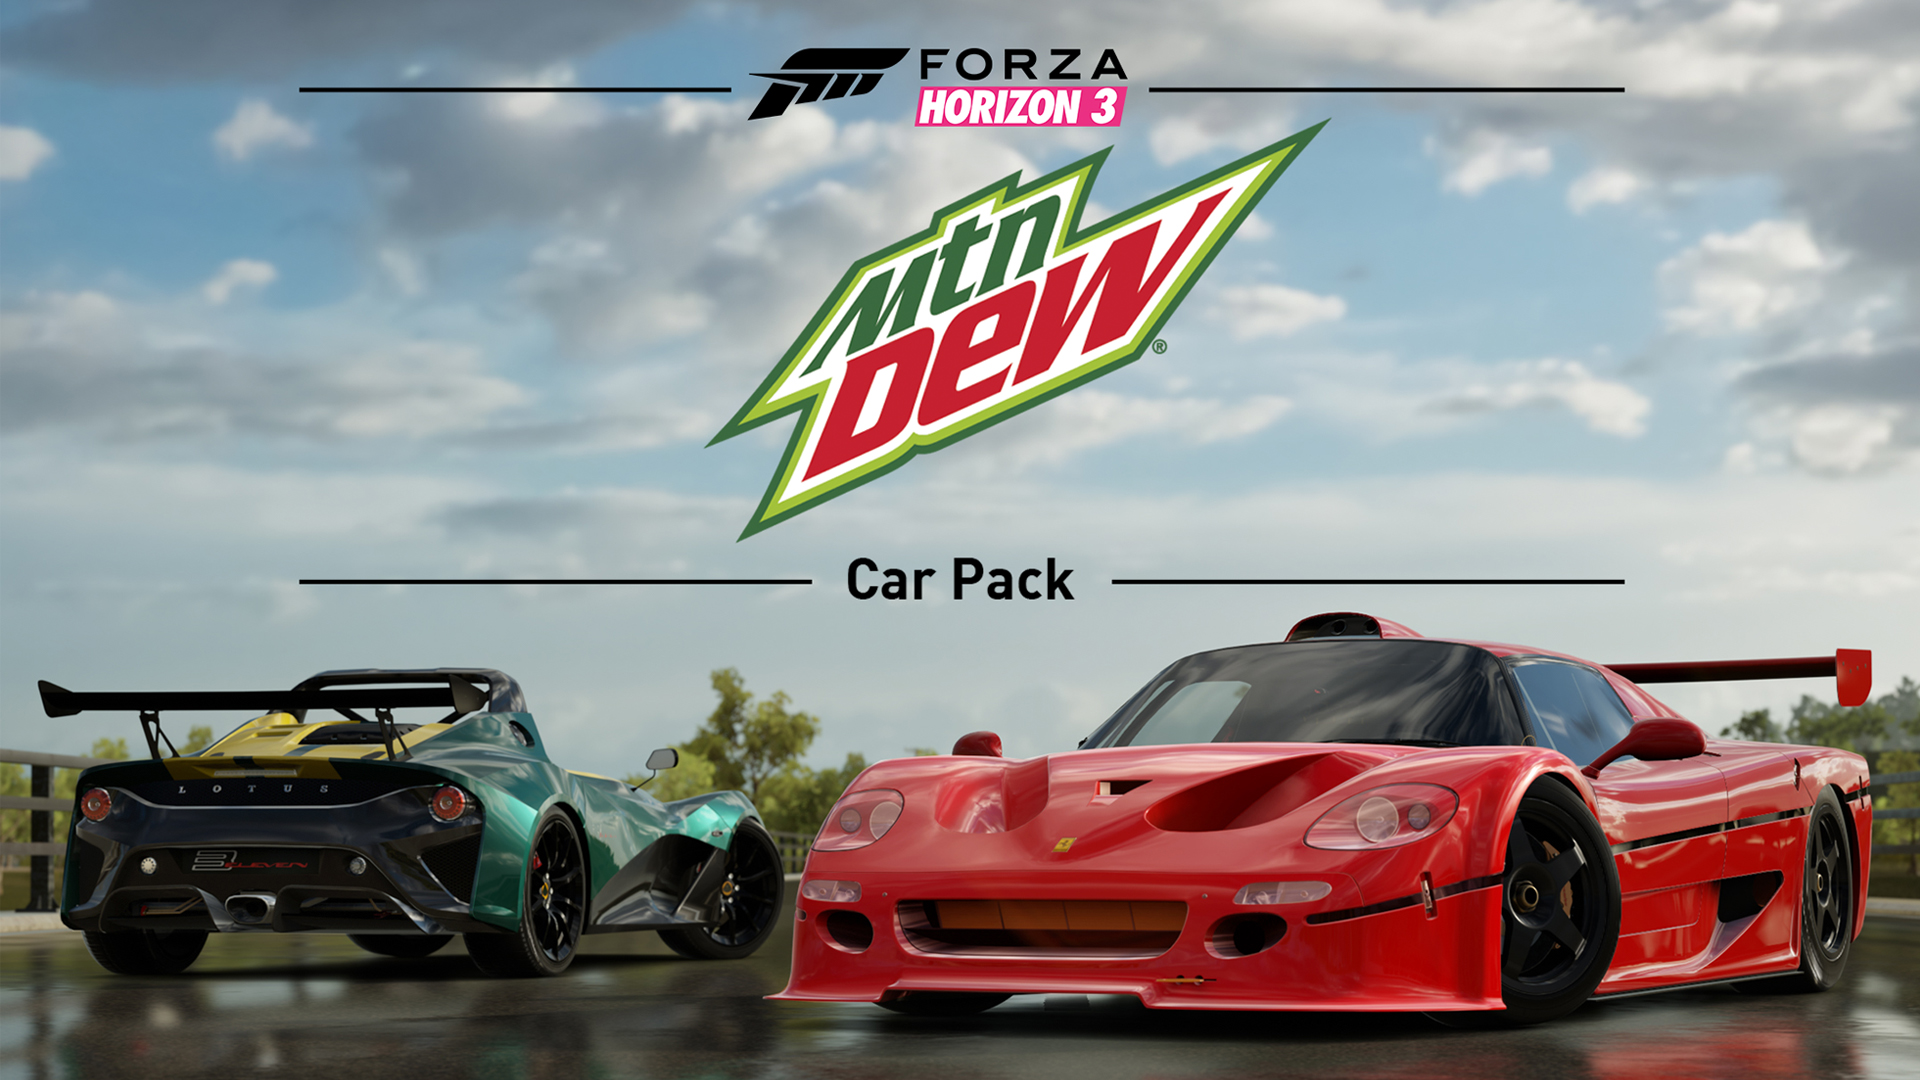 Forza Horizon 3 Moutnain Dew Car Pack Hero